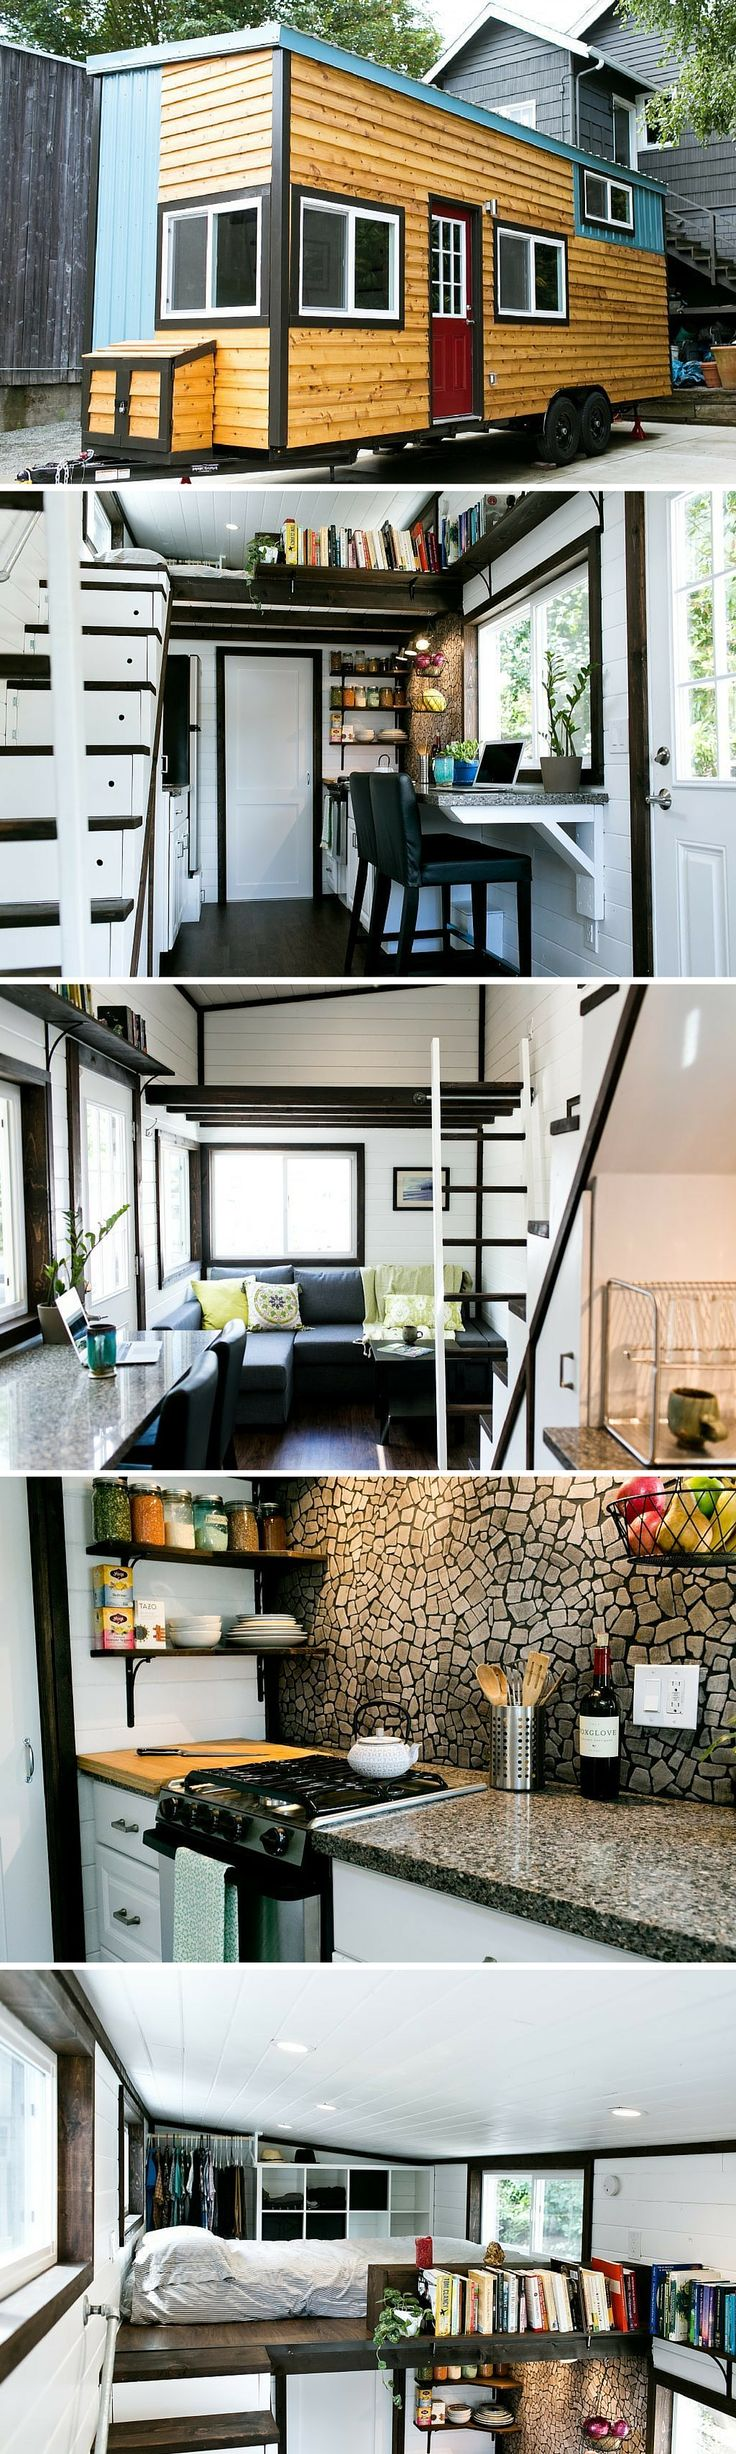 Not Your Average Tiny House: a unique, luxury tiny house with a beautiful design, inside and out